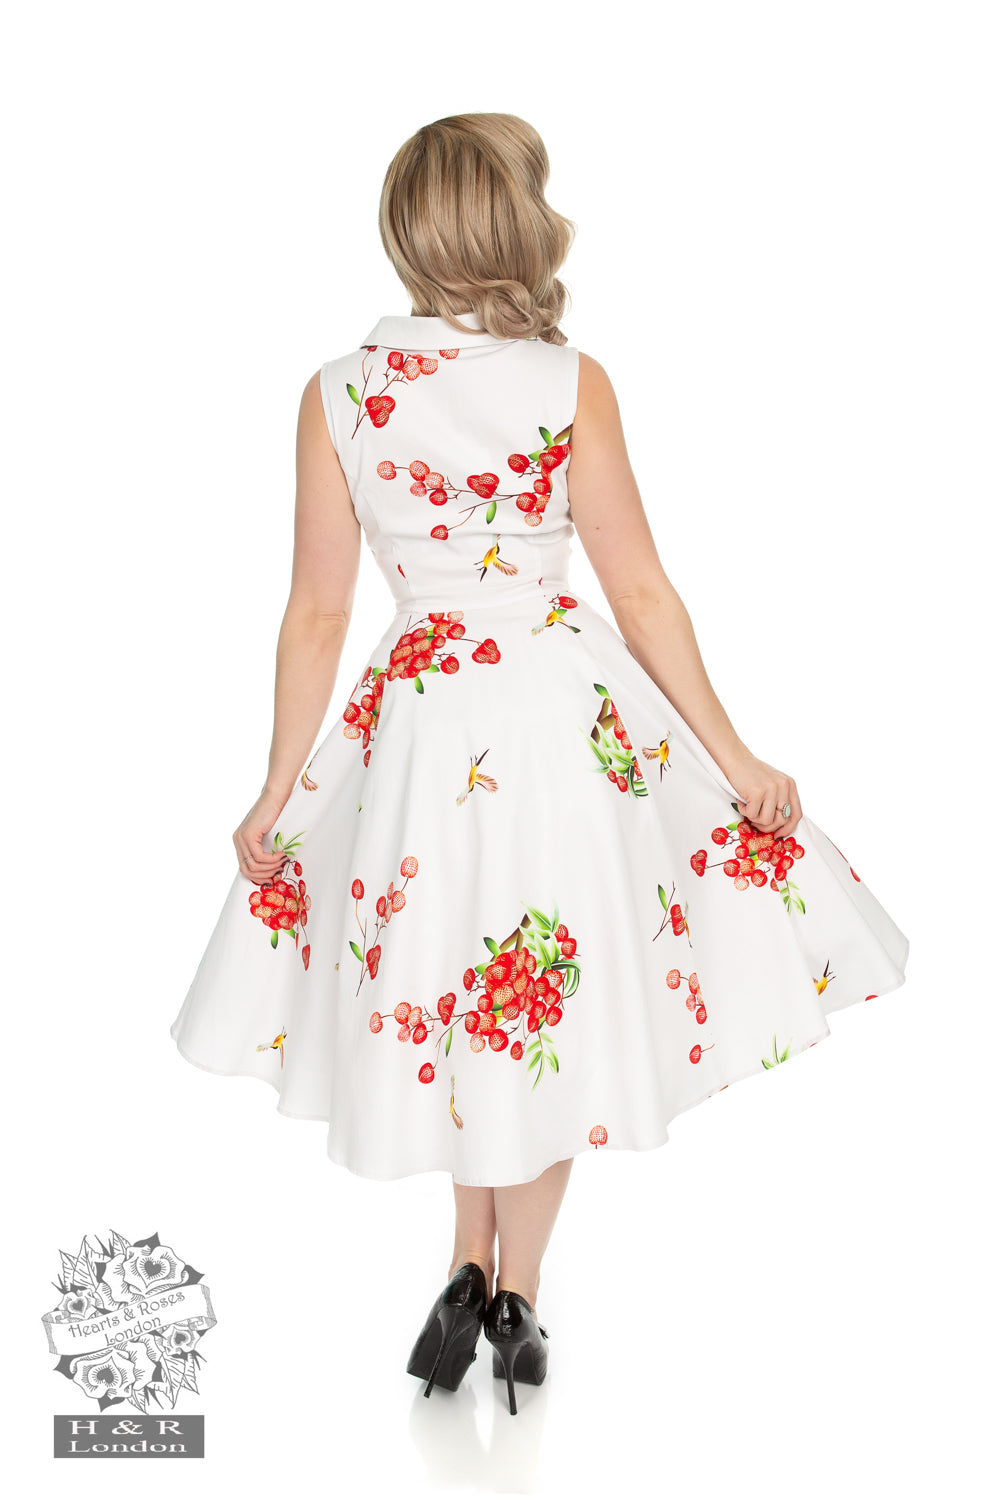 Berry Blast Swing Dress by Hearts & Roses